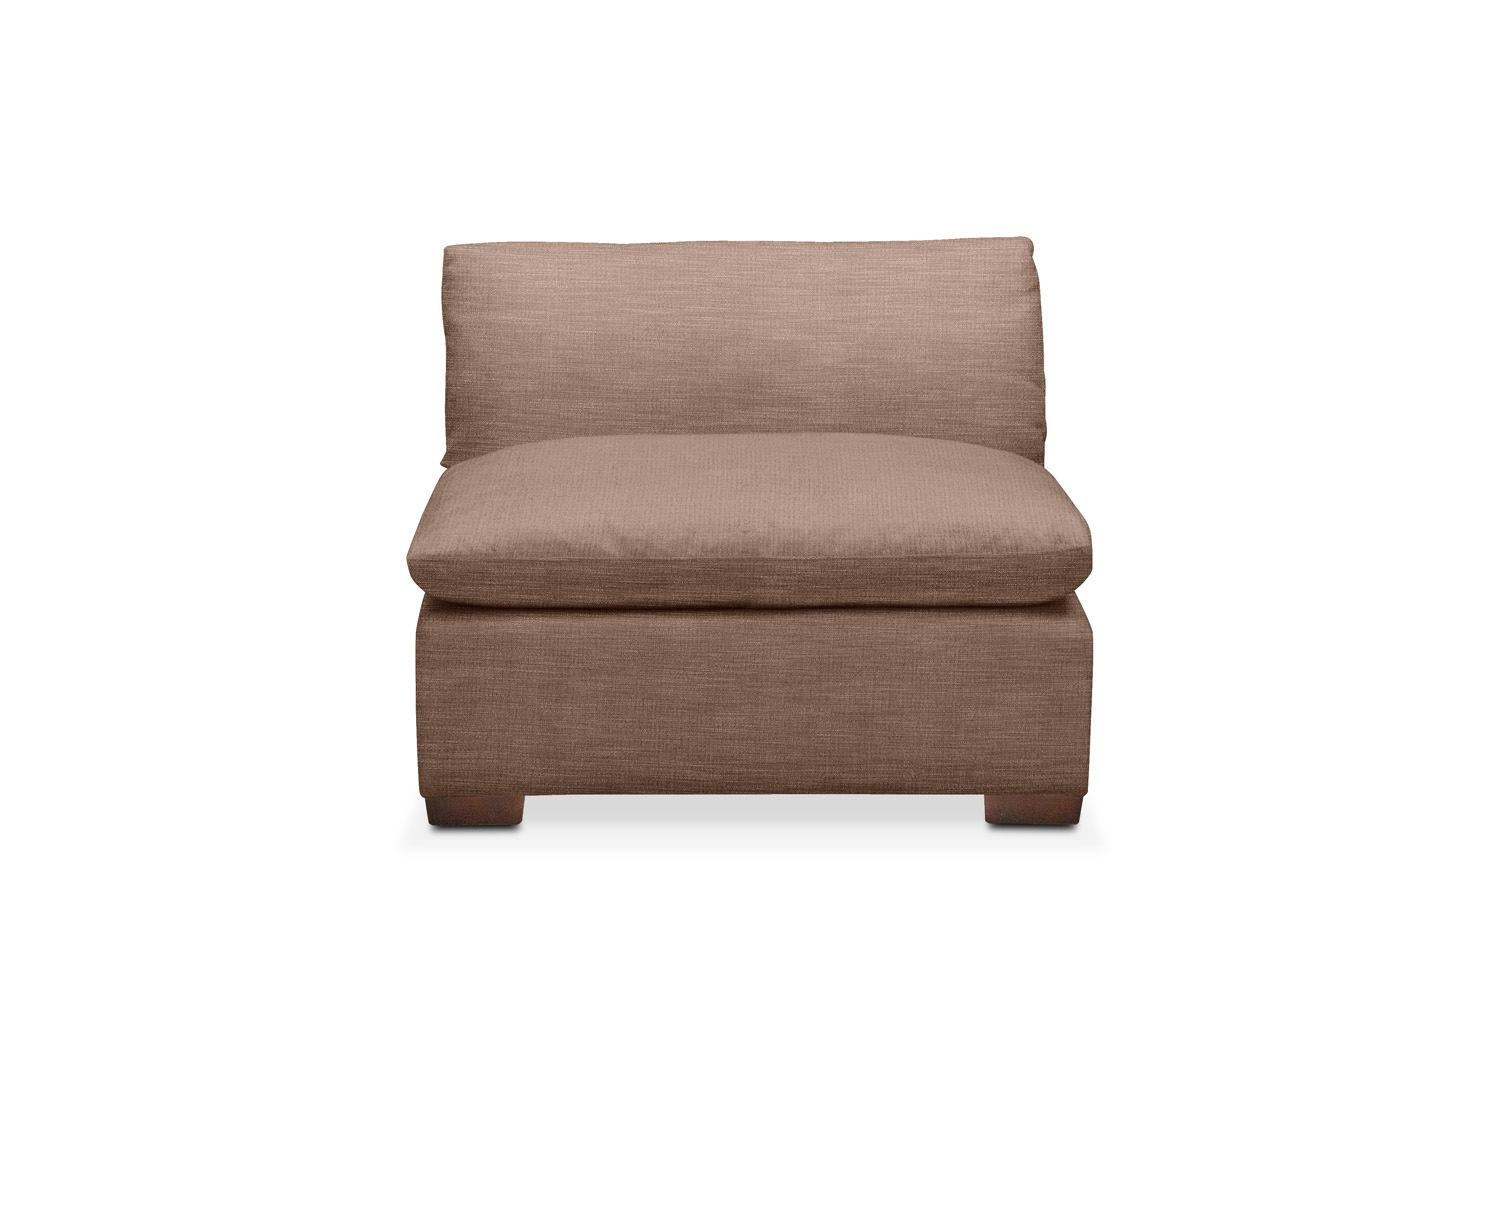 Living Room Furniture - Plush Armless Chair